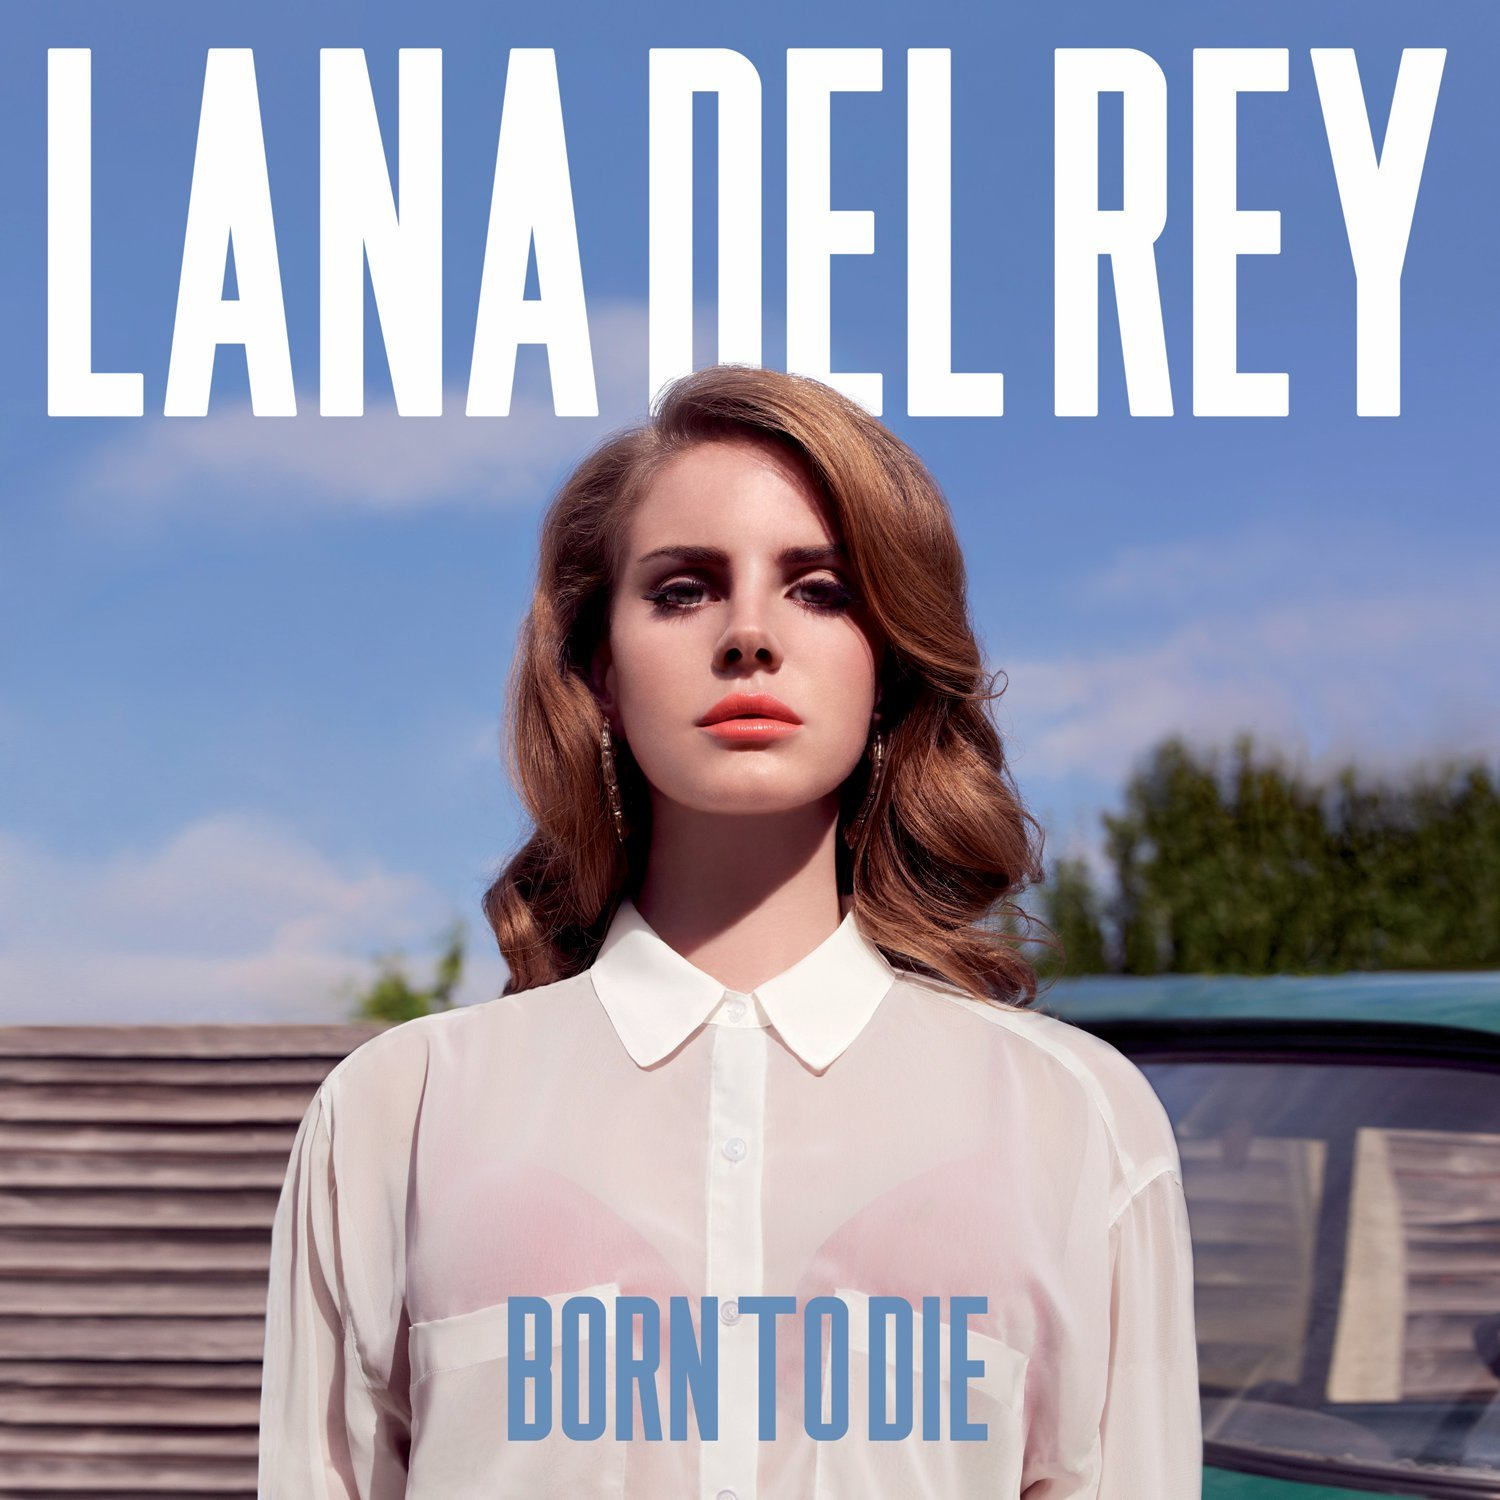 Born To Die [LP] by Interscope